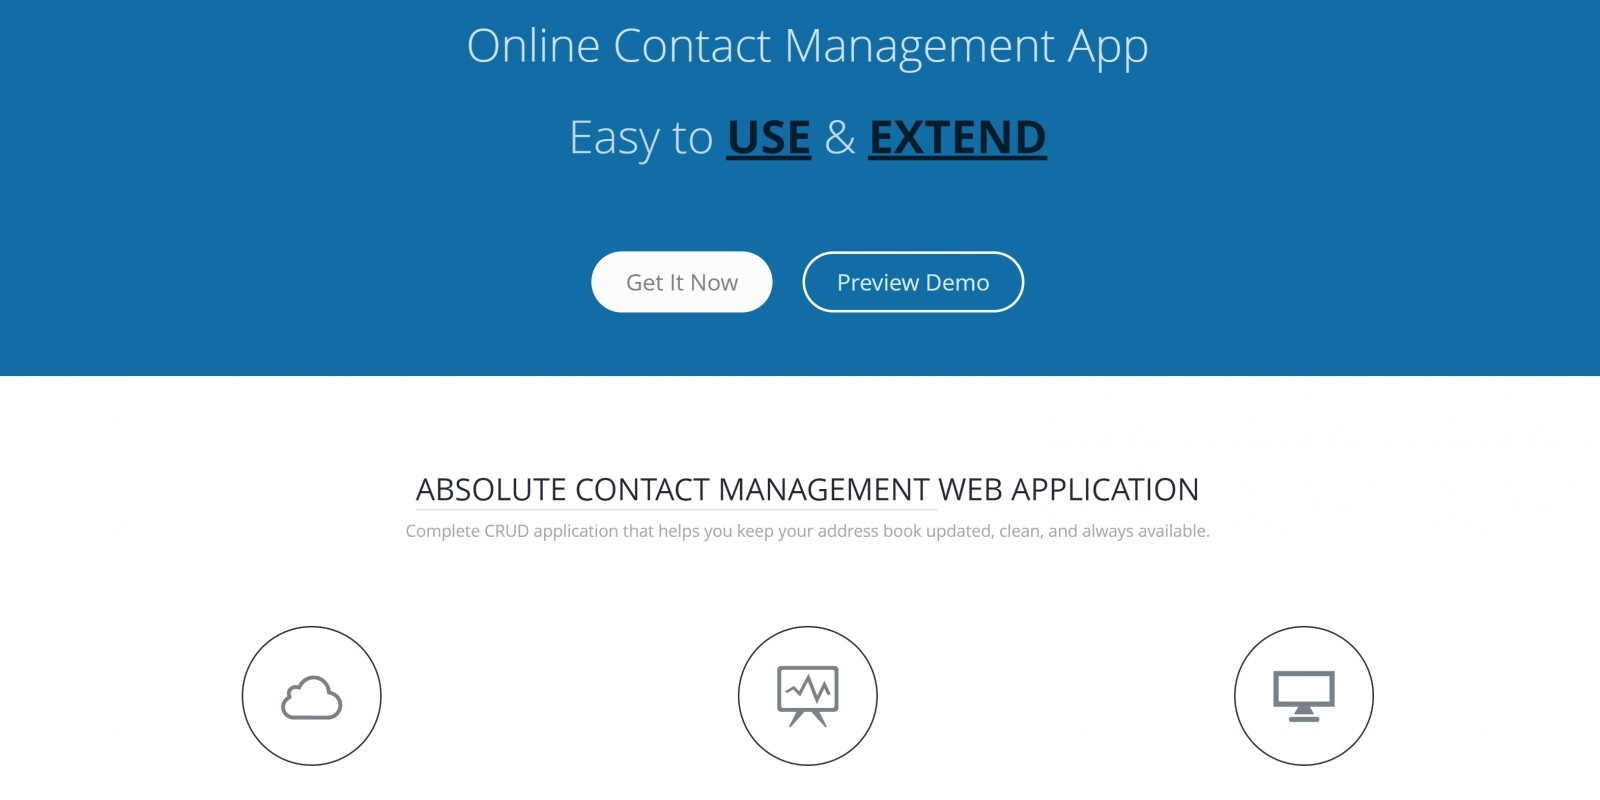 LaraContact – Online Contact Management App